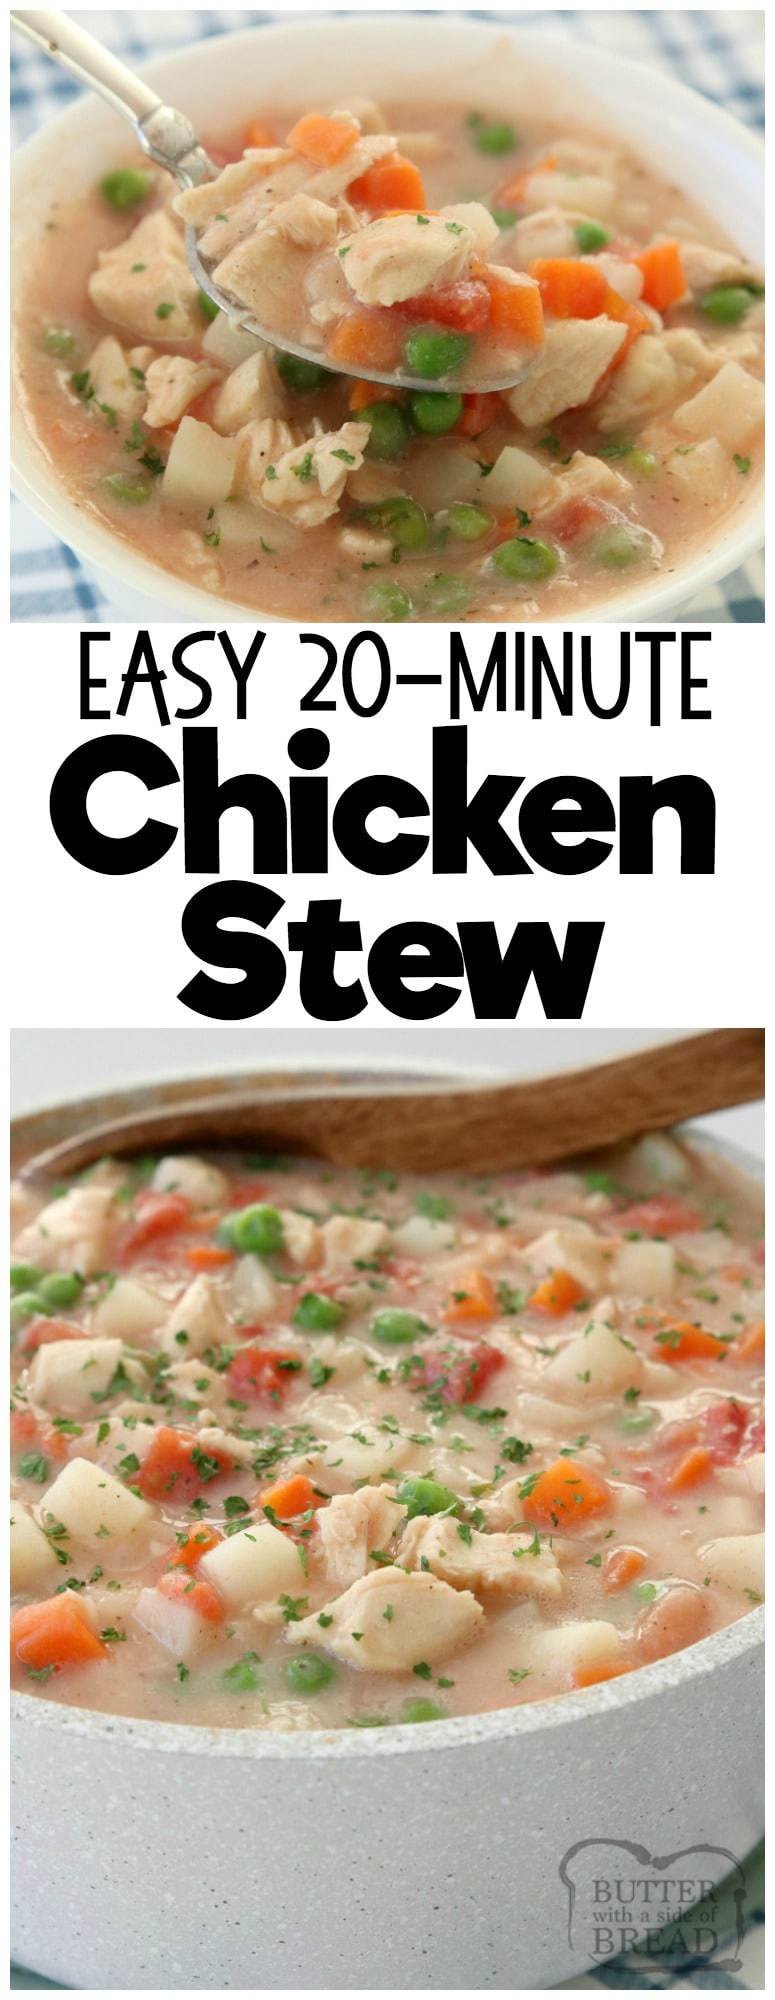 20-Minute Chicken Stew, perfect for busy nights & filled with tender chicken & vegetables. Our hearty, homemade #chicken #stew is made FAST & tastes delicious! Quick & easy #dinner #recipe from Butter With A Side of Bread